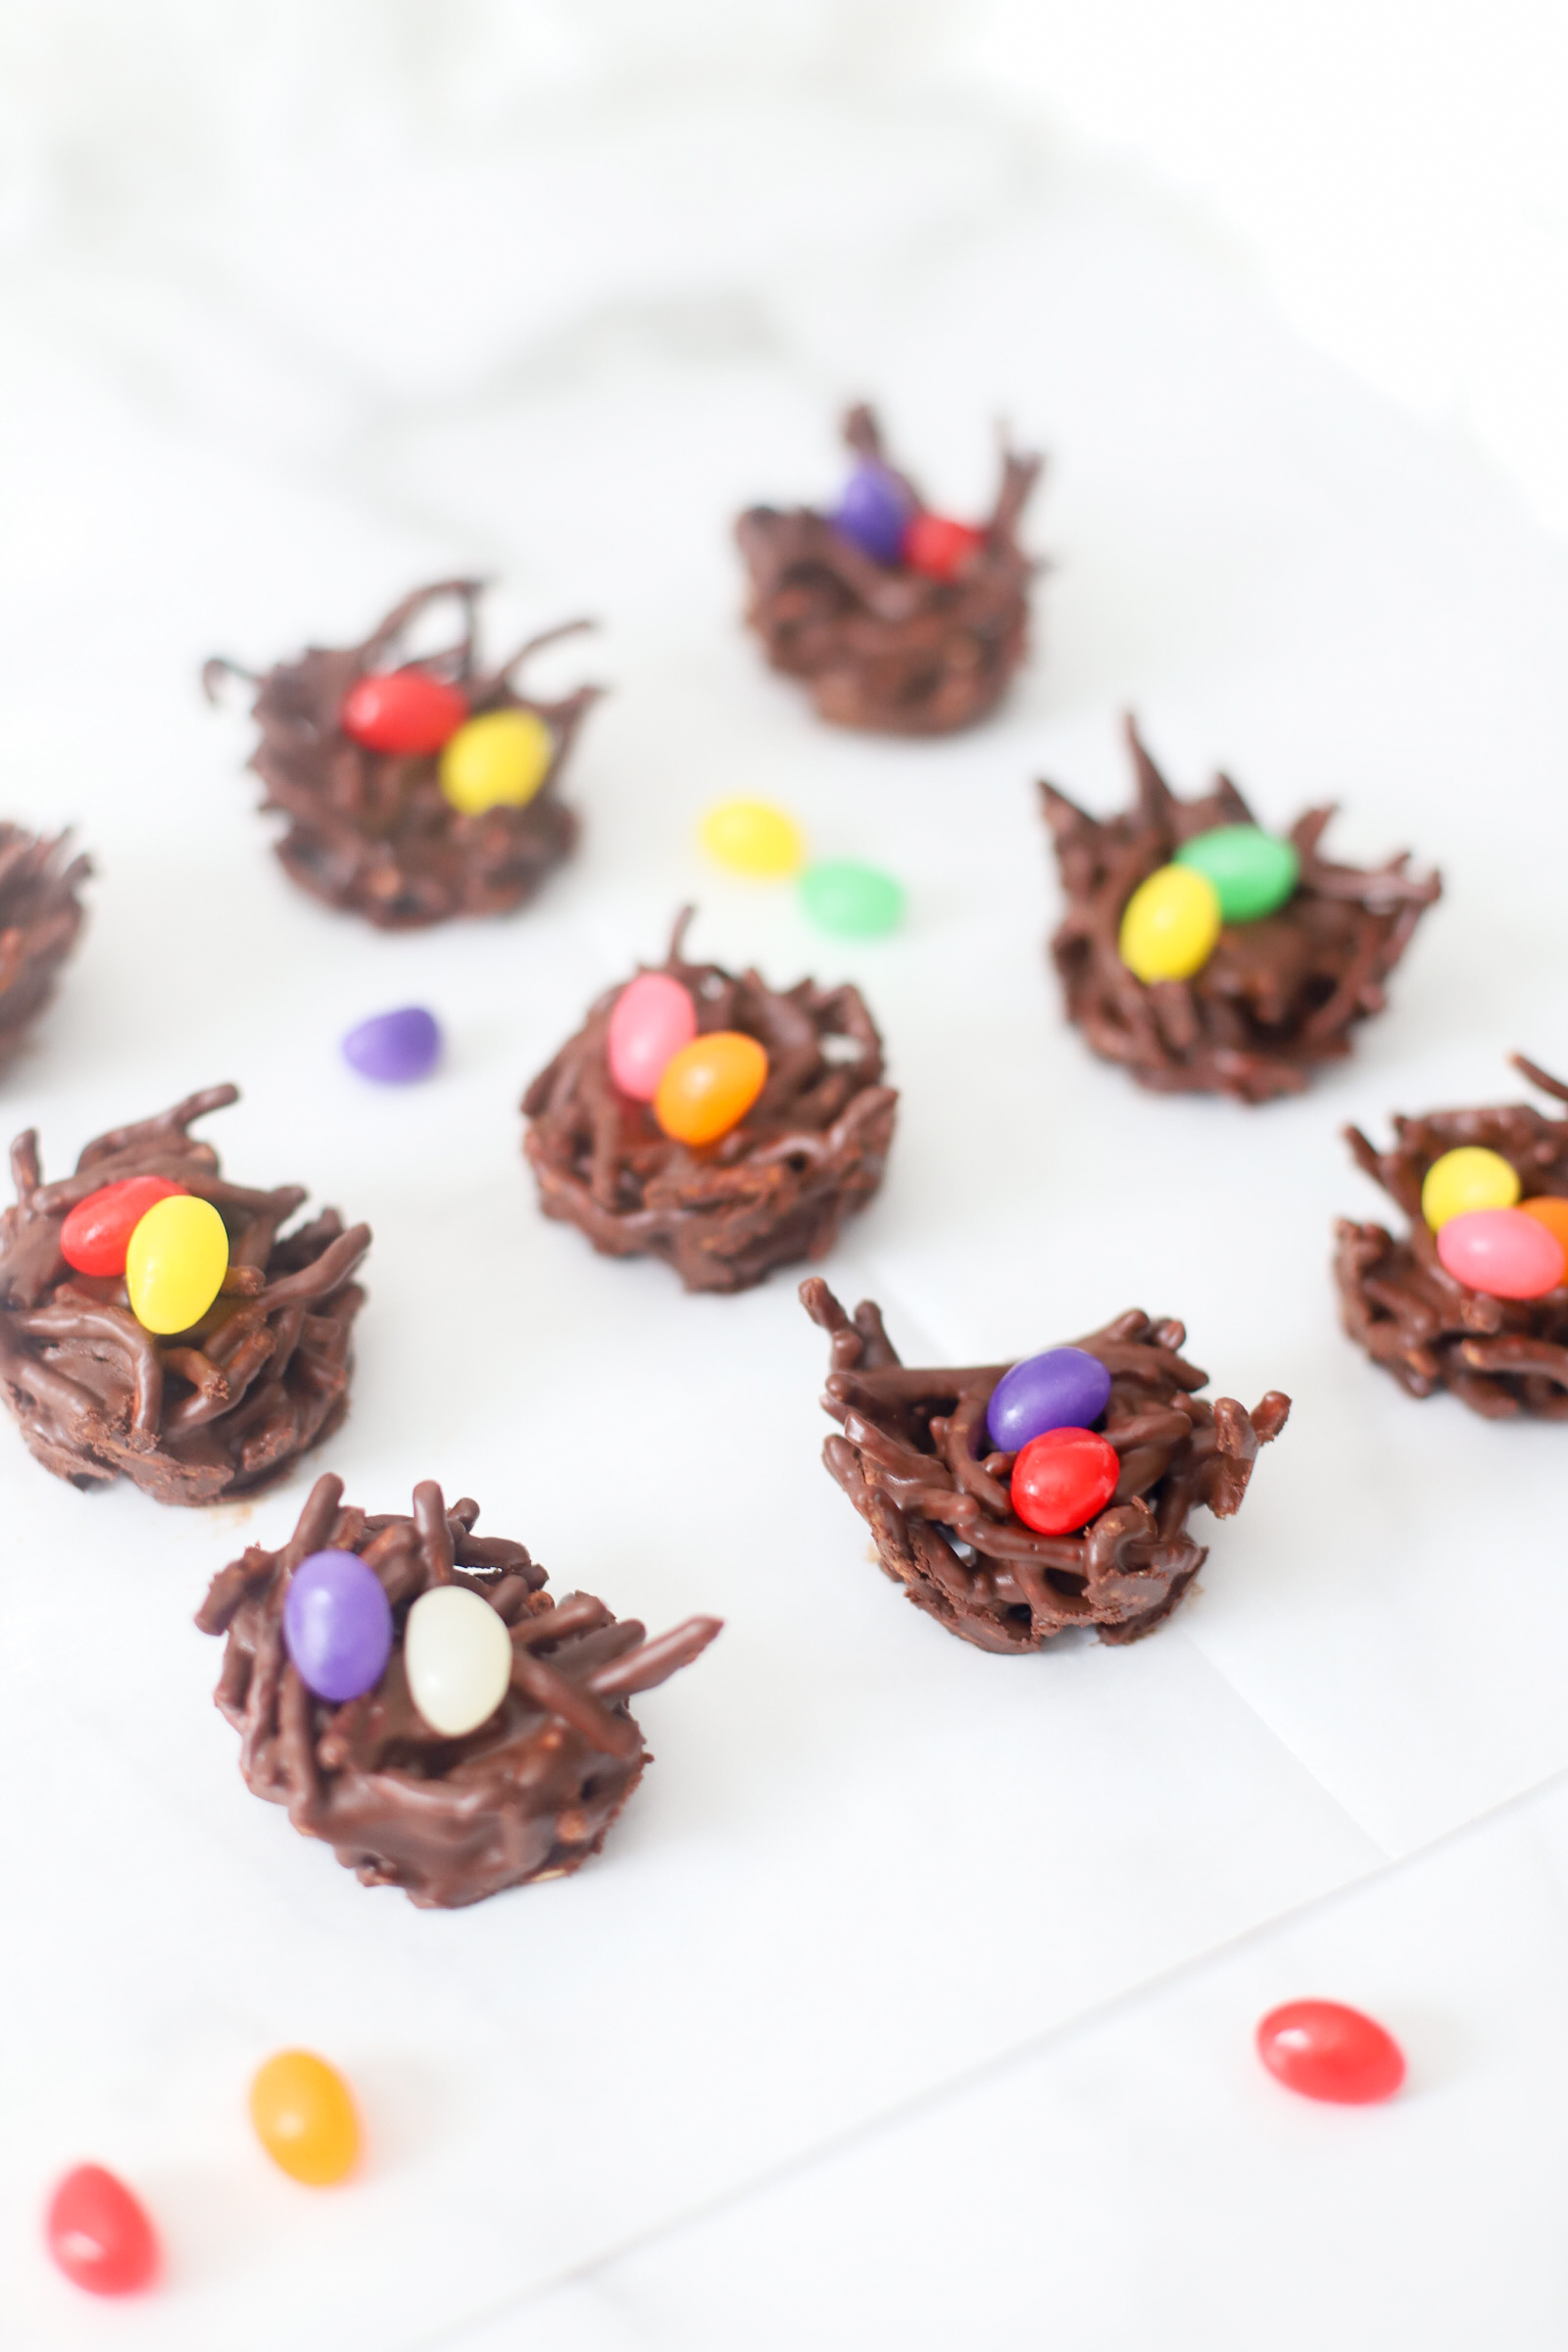 Easter-themed treats